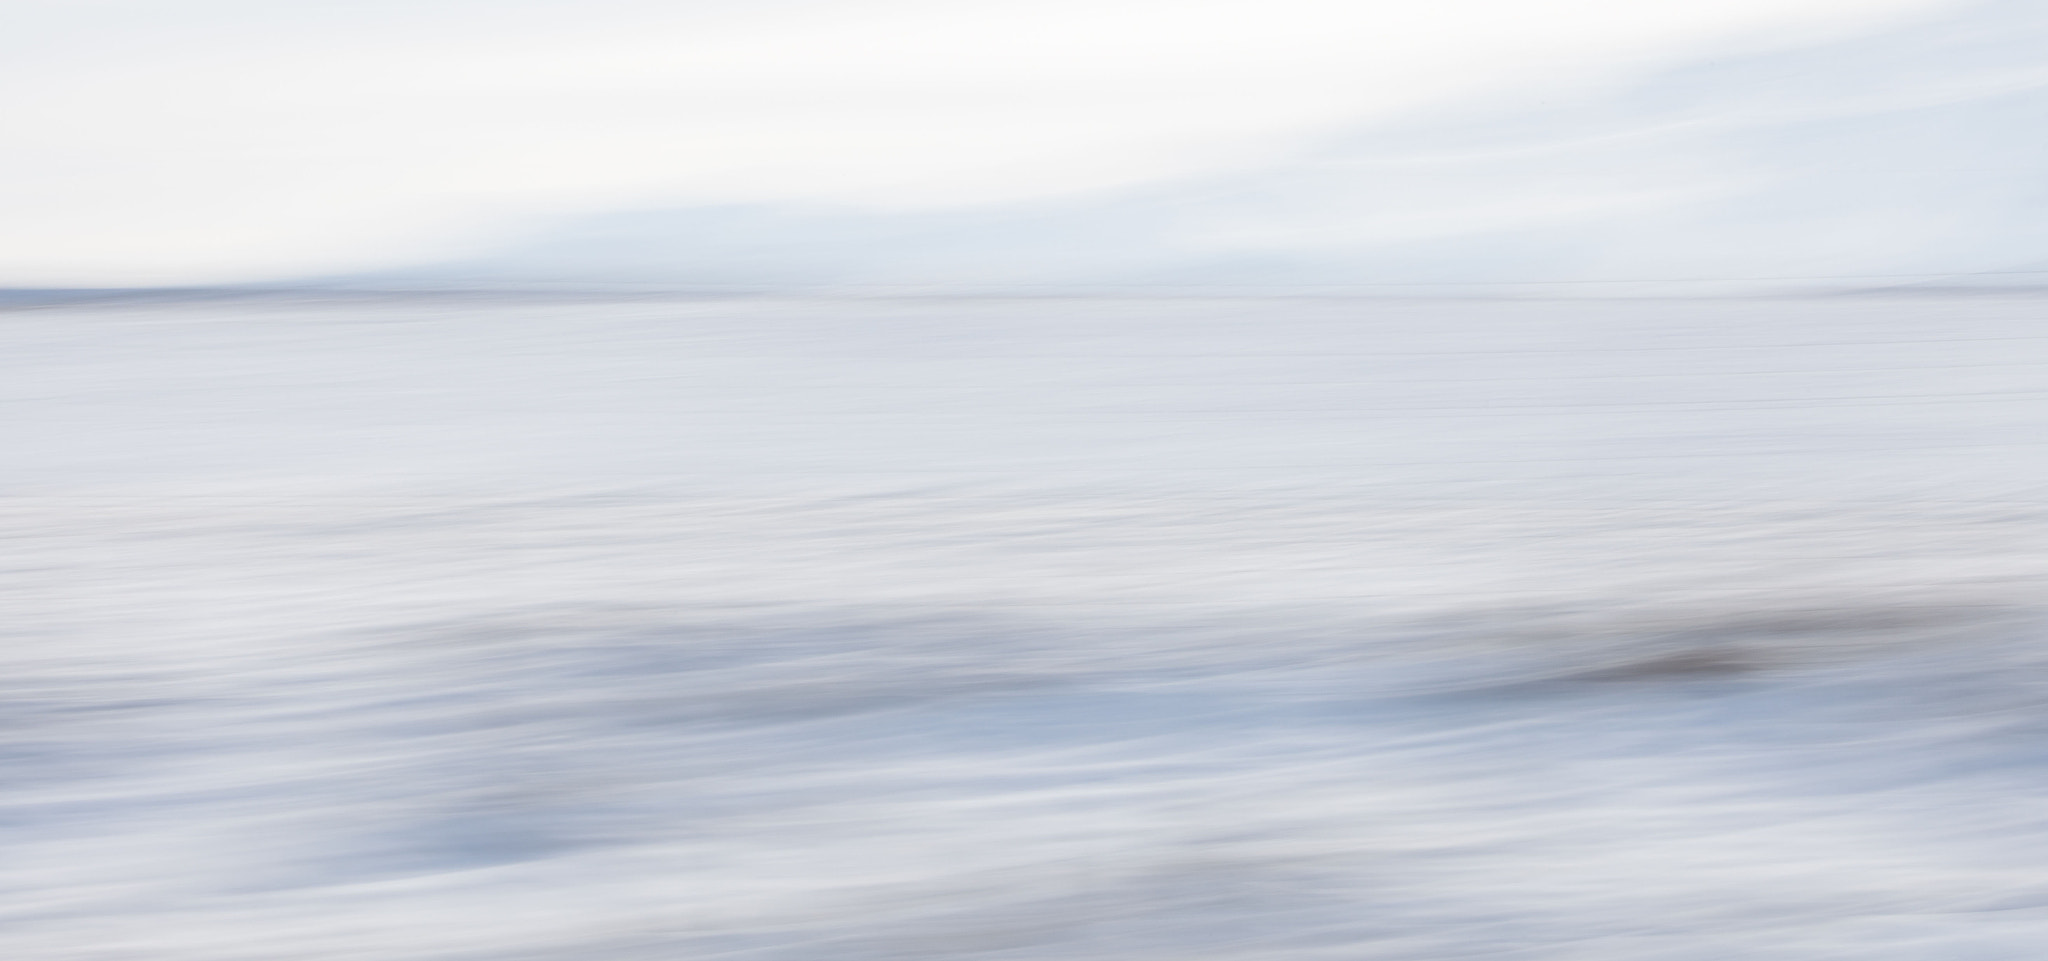 Photograph Abstract winter landscape by Johanna Kirk on 500px